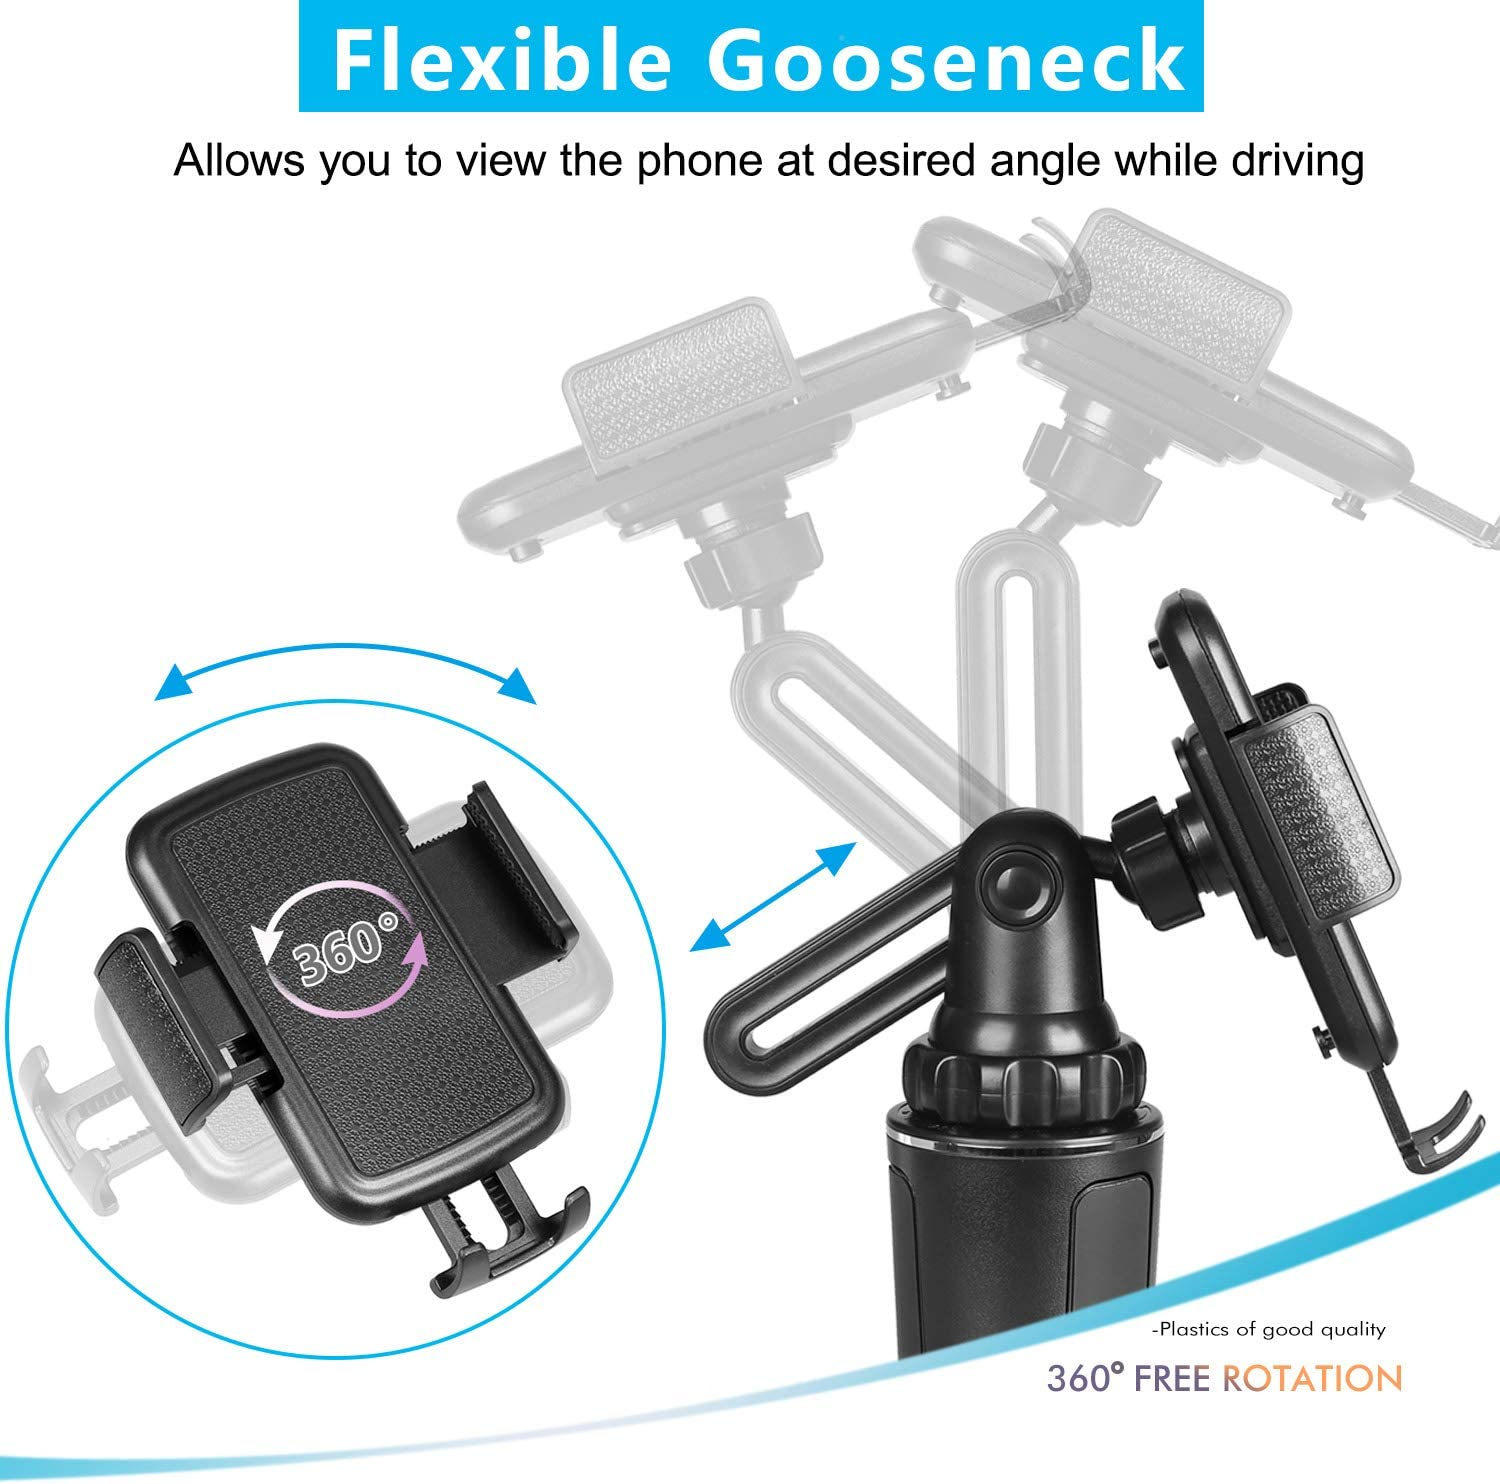 Car Cup Holder Phone Mount Upgraded UBEEQLO Adjustable Universal Cup Holder Cradle Car Mount with Flexible Long Neck for Cell Phone iPhone 11pro Xs XS Max XR X 8 8plus 7 7 Plus Samsung Galaxy S9 S8 S7